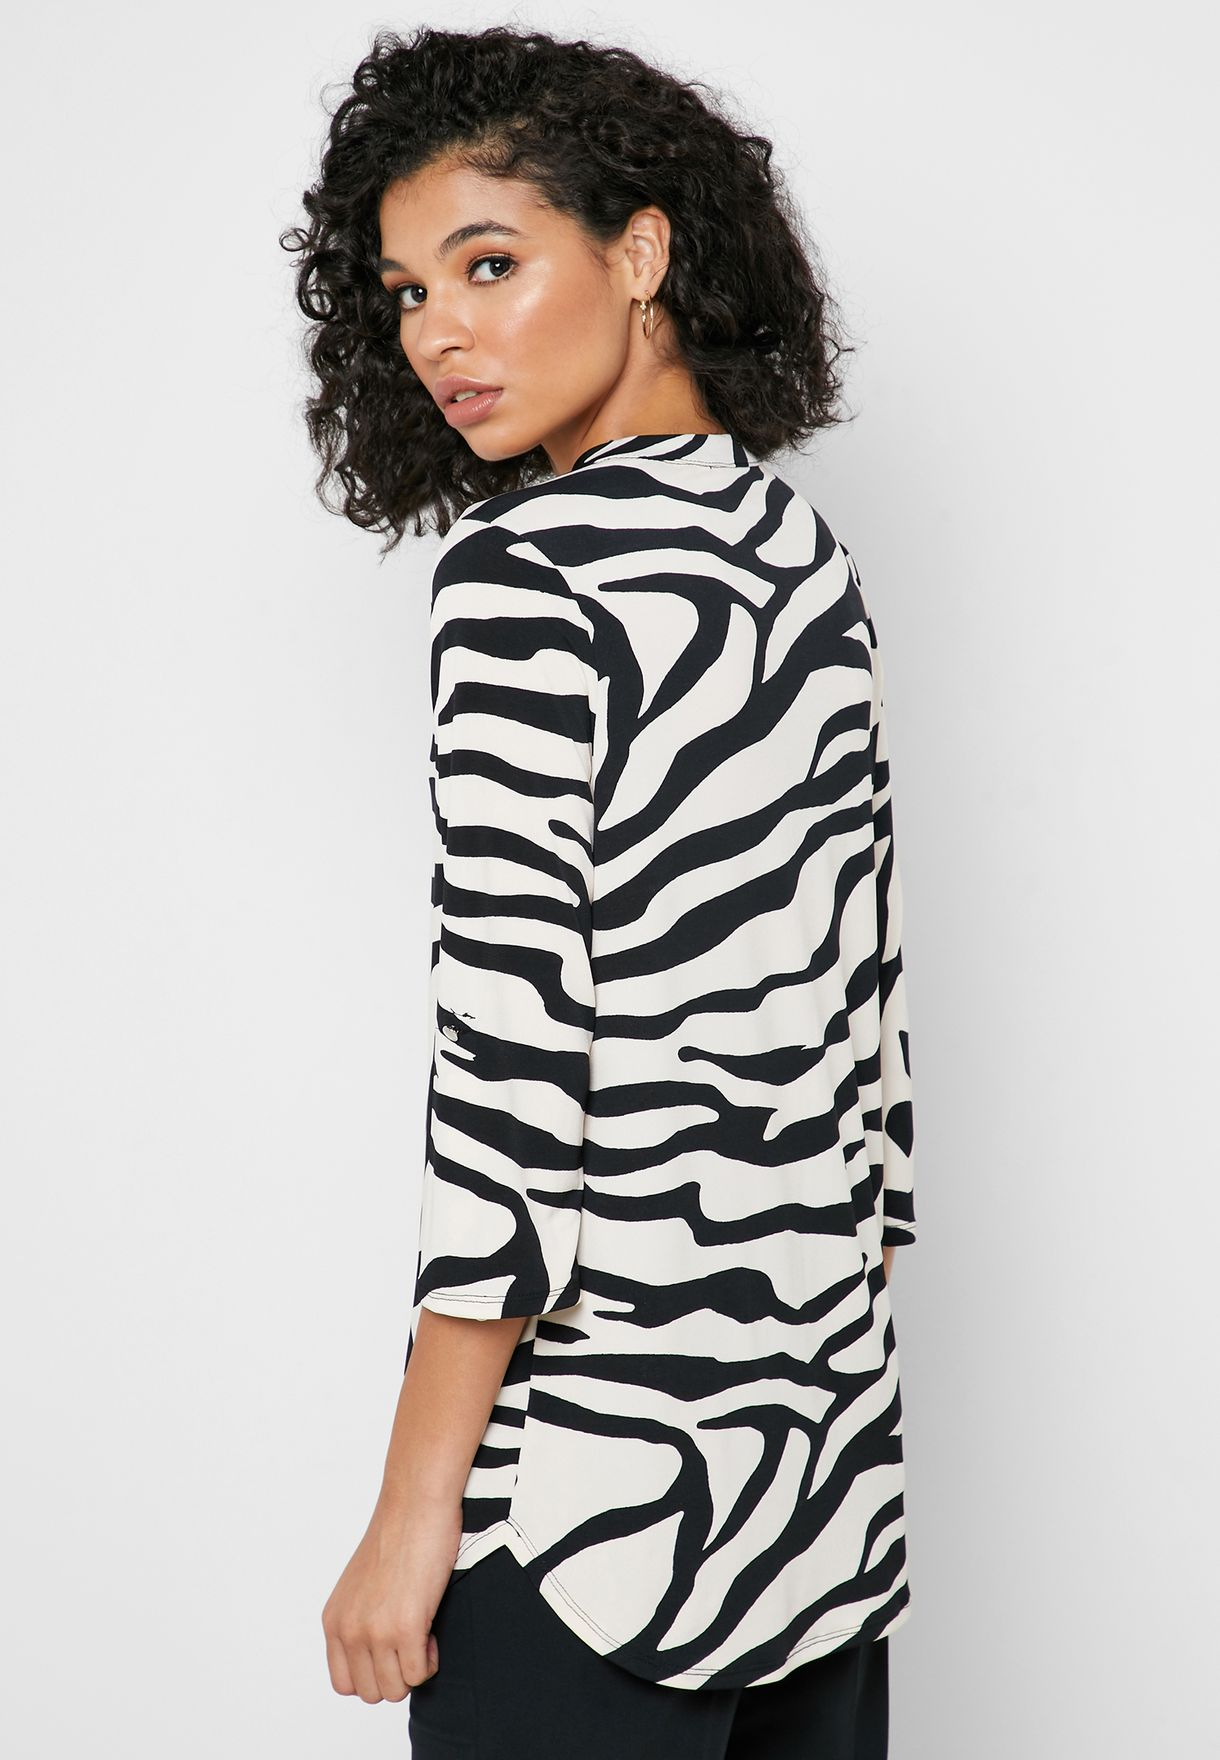 V-Neck Zebra Print Top